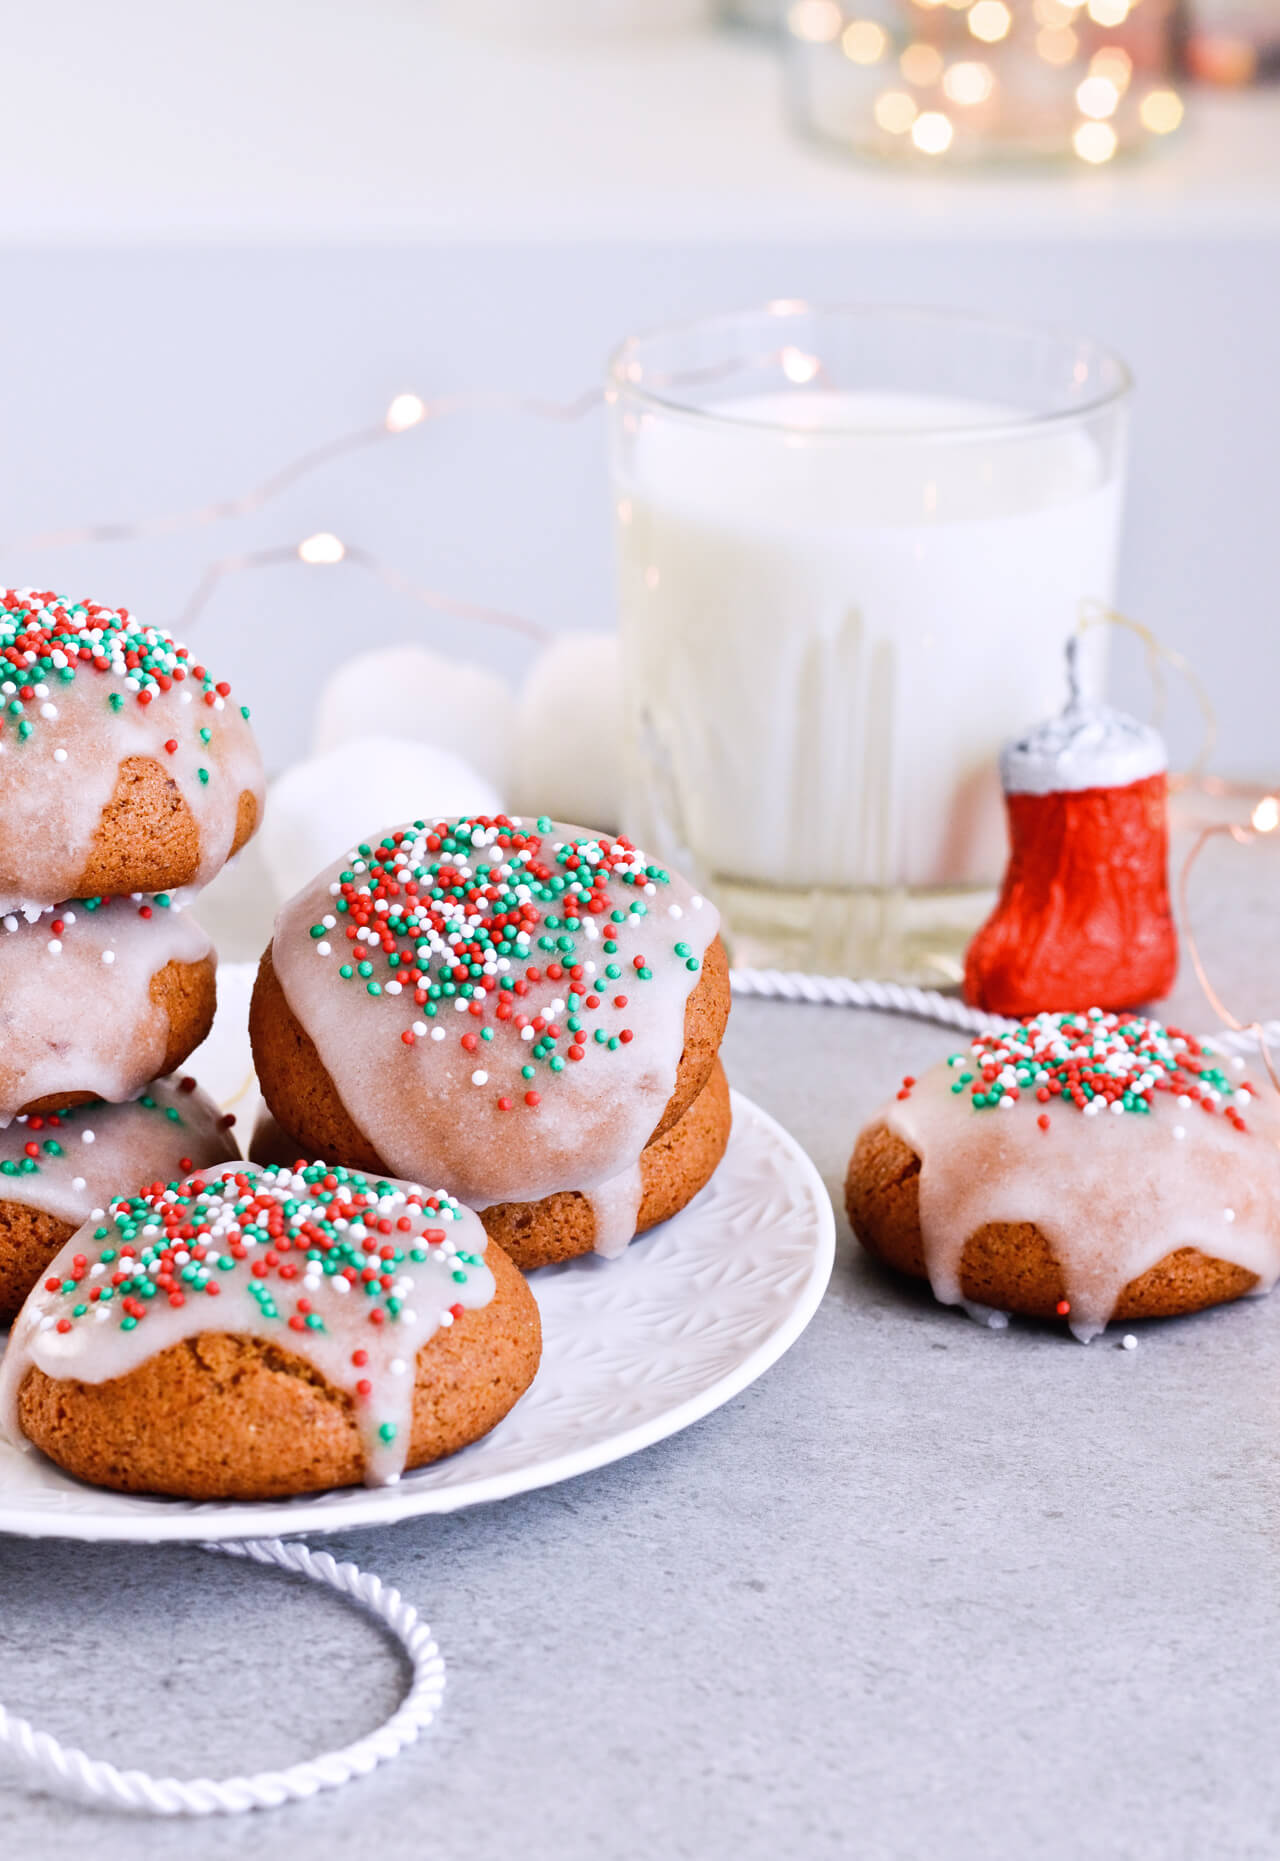 Recipe for Sugar glazed lebkuchen (German Christmas cookies), the perfect spicy and sweet cookies. Great for Christmas or any cold month, they're filled with honey and wonderful, aromatic spices. The festive sprinkles add that extra holiday touch. | @mitzyathome mitzyathome.com